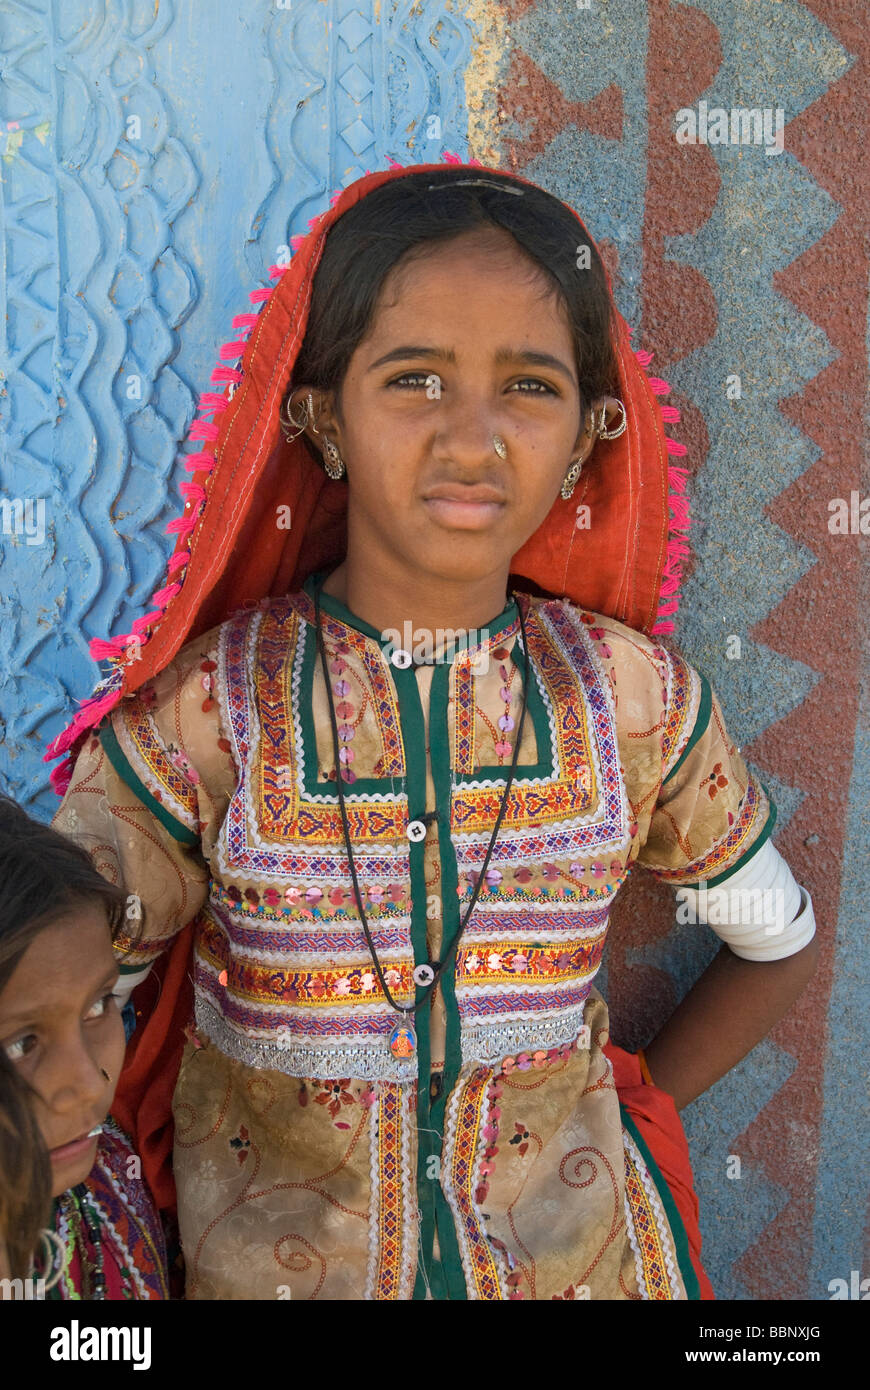 Kutchi girl in tribal costume leaning against bhunga wall, Hodka, Gujarat, India - Stock Image